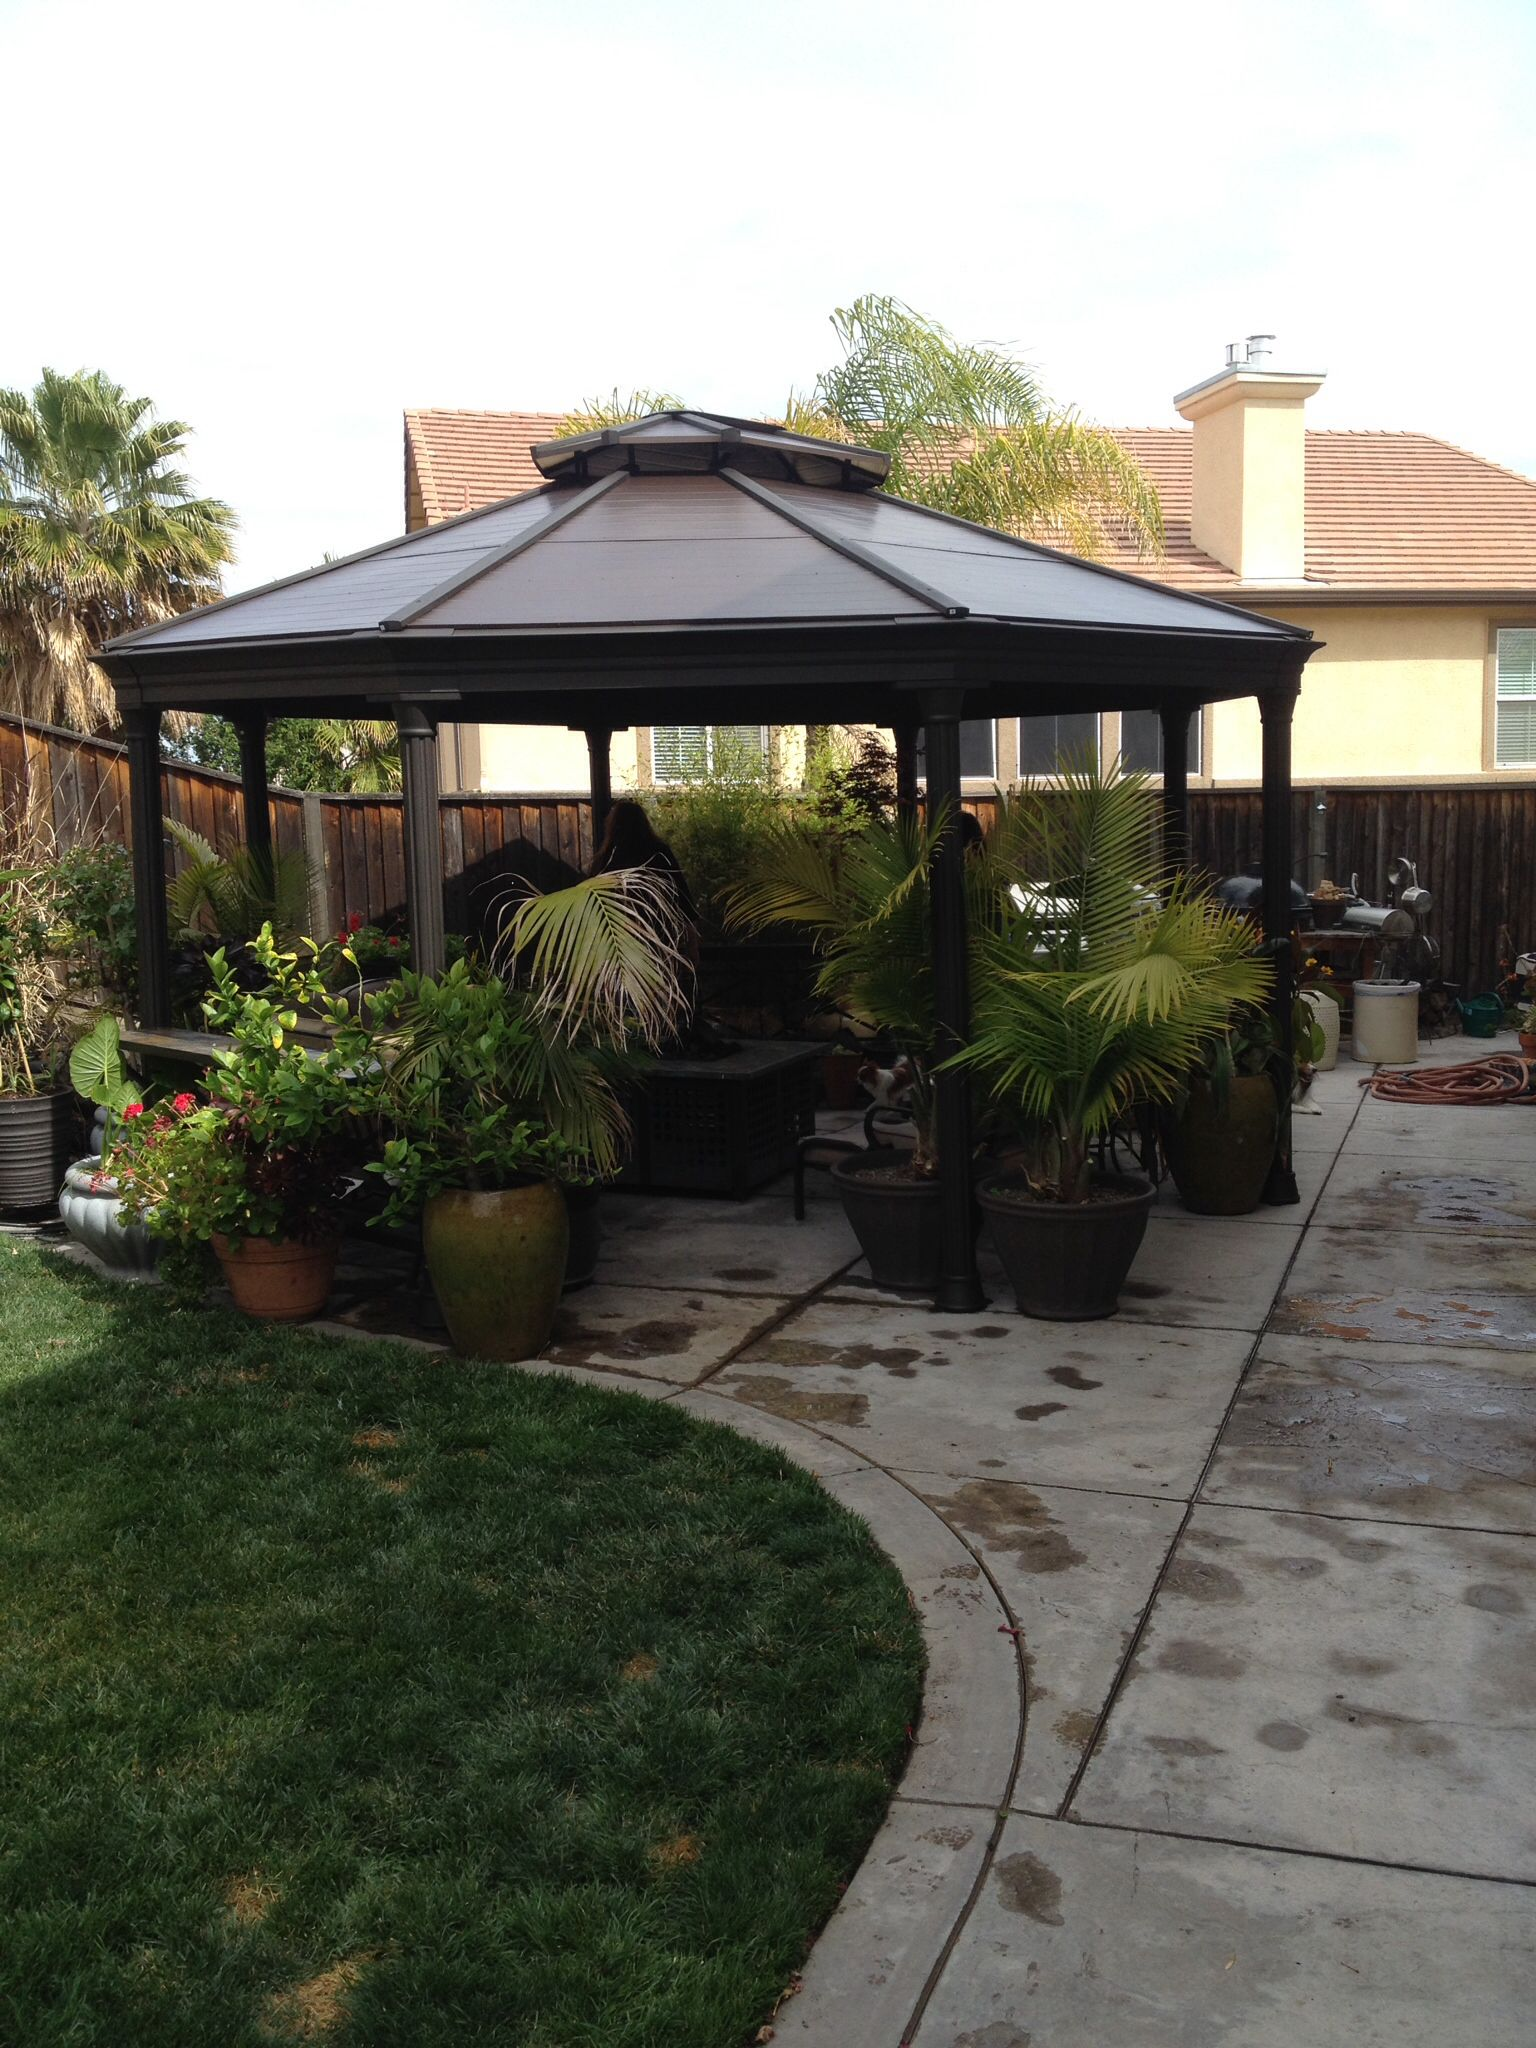 The Costco Gazebo in my backyard | Small garden gazebo ... on My Garden Outdoor Living id=59582